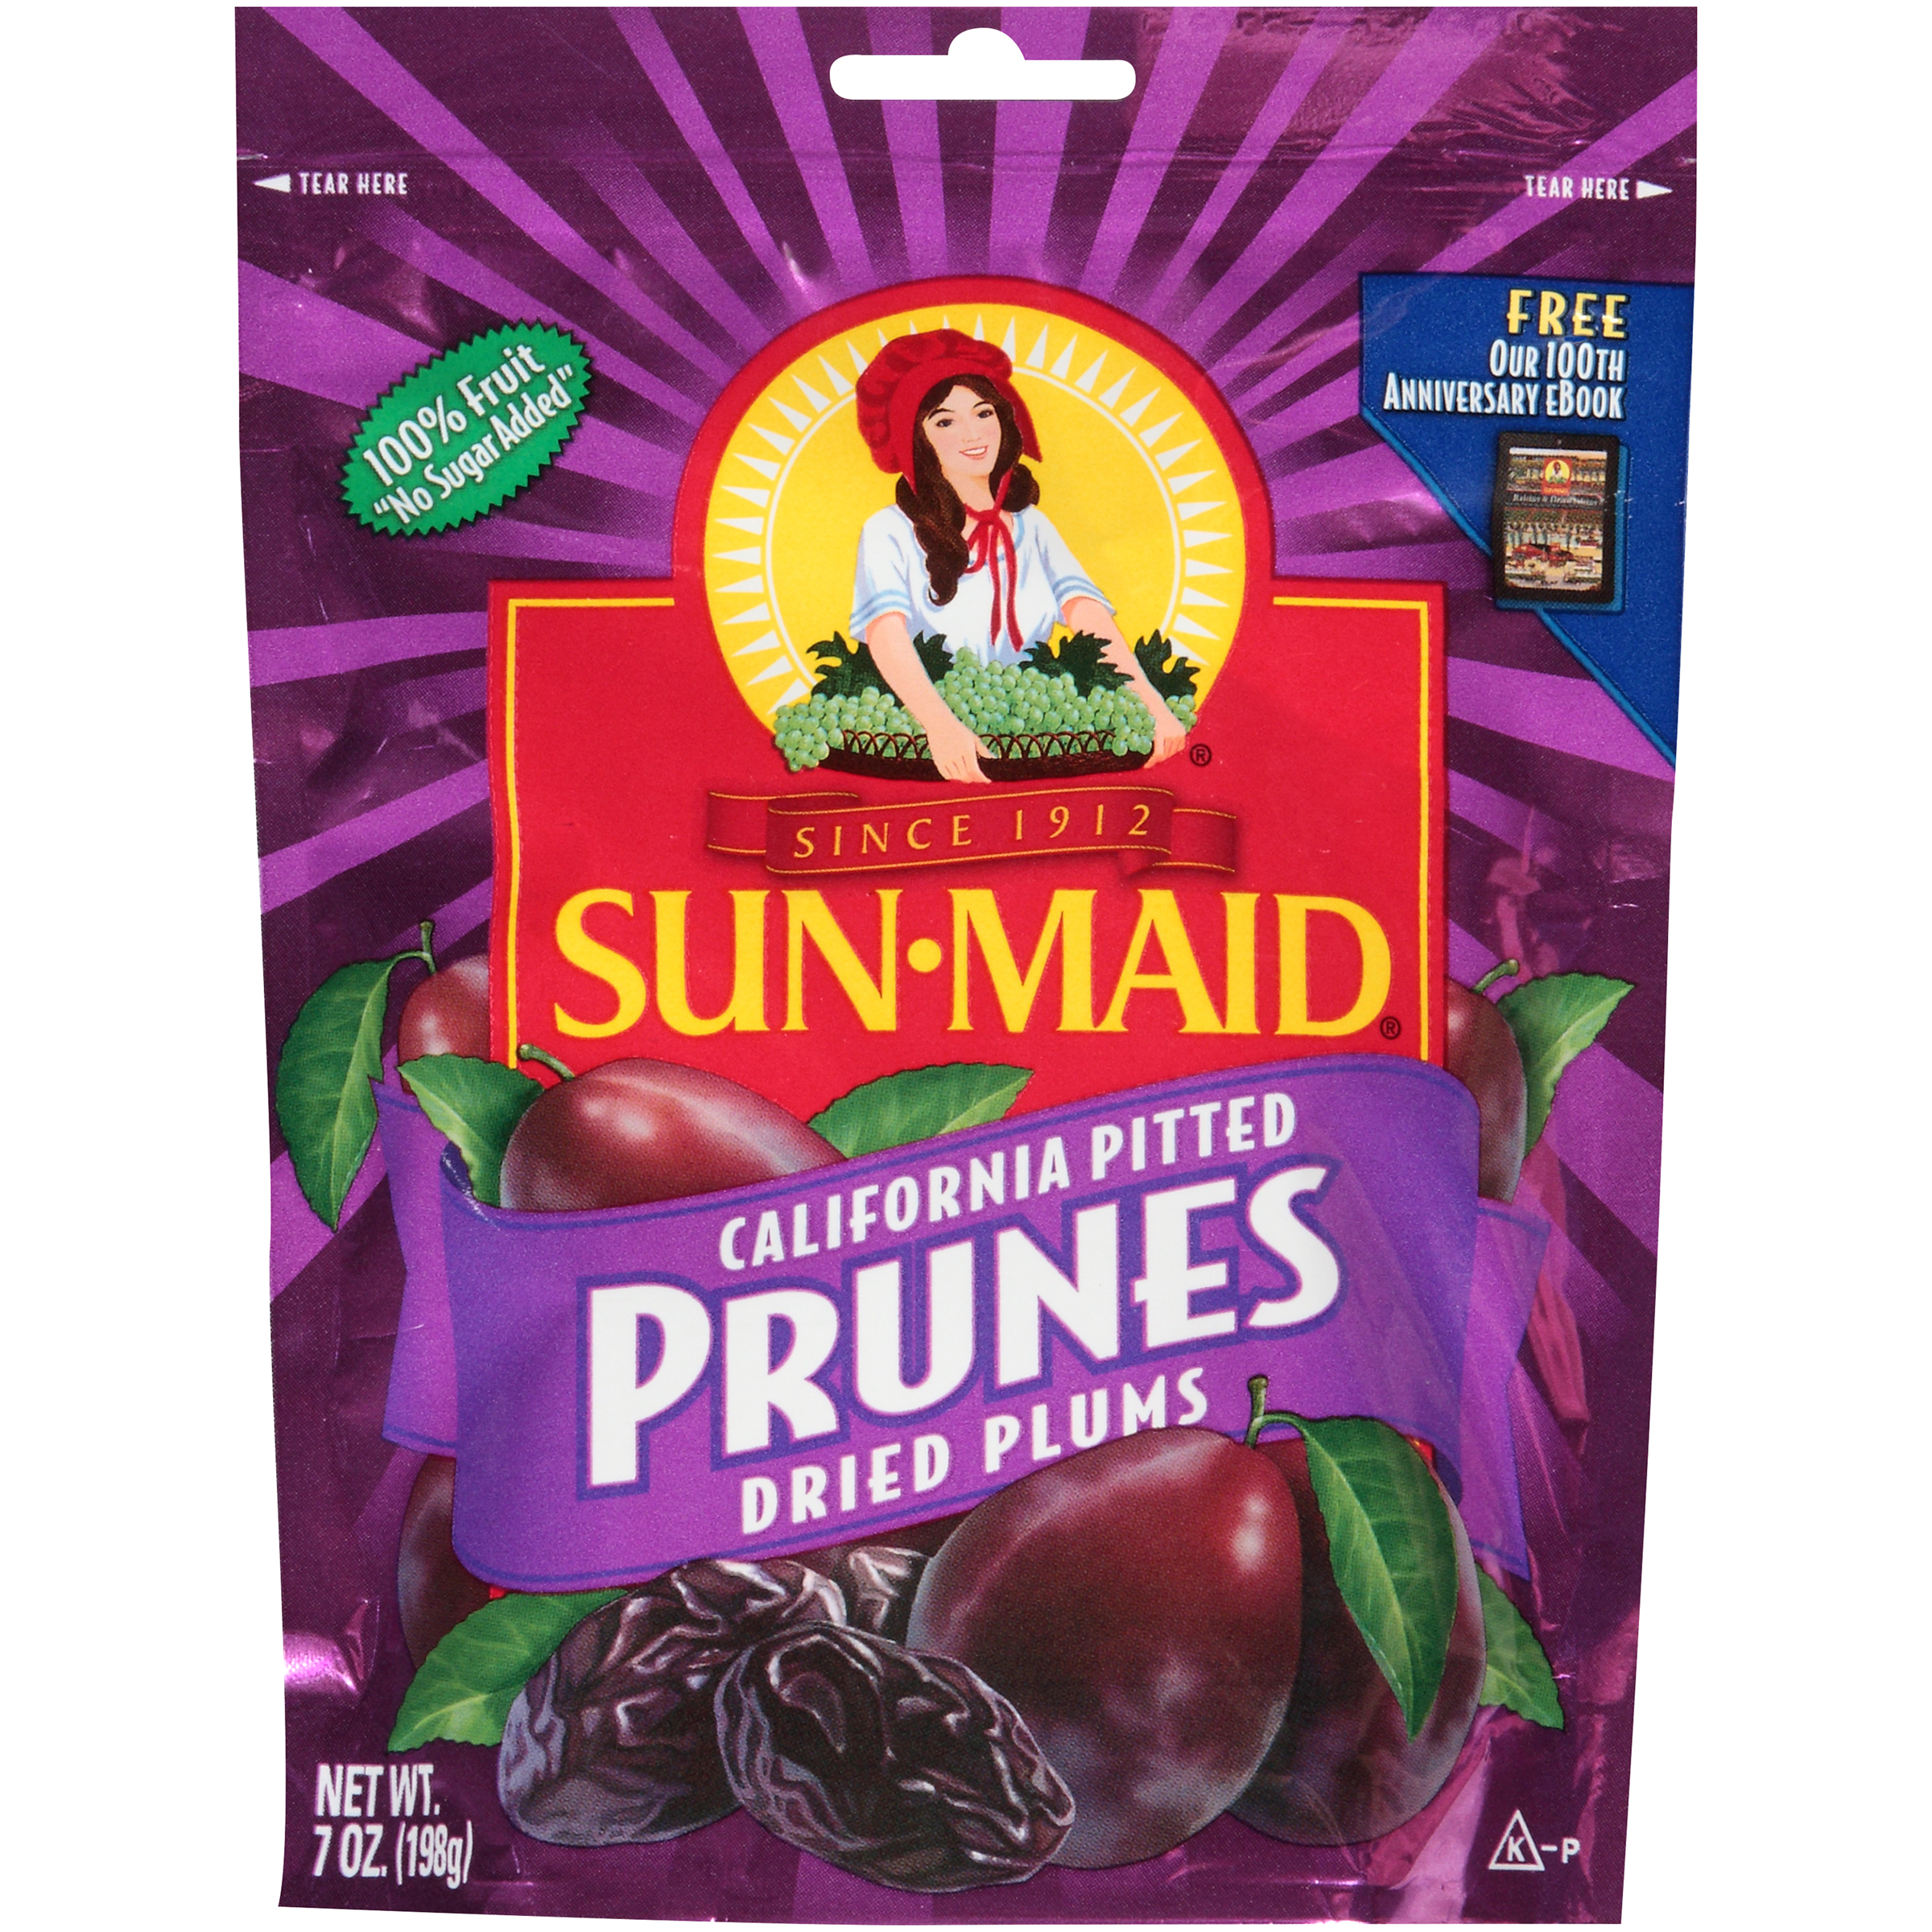 Sun Maid Pitted Prunes Dried Plums Net Wt 7 Oz 198 G